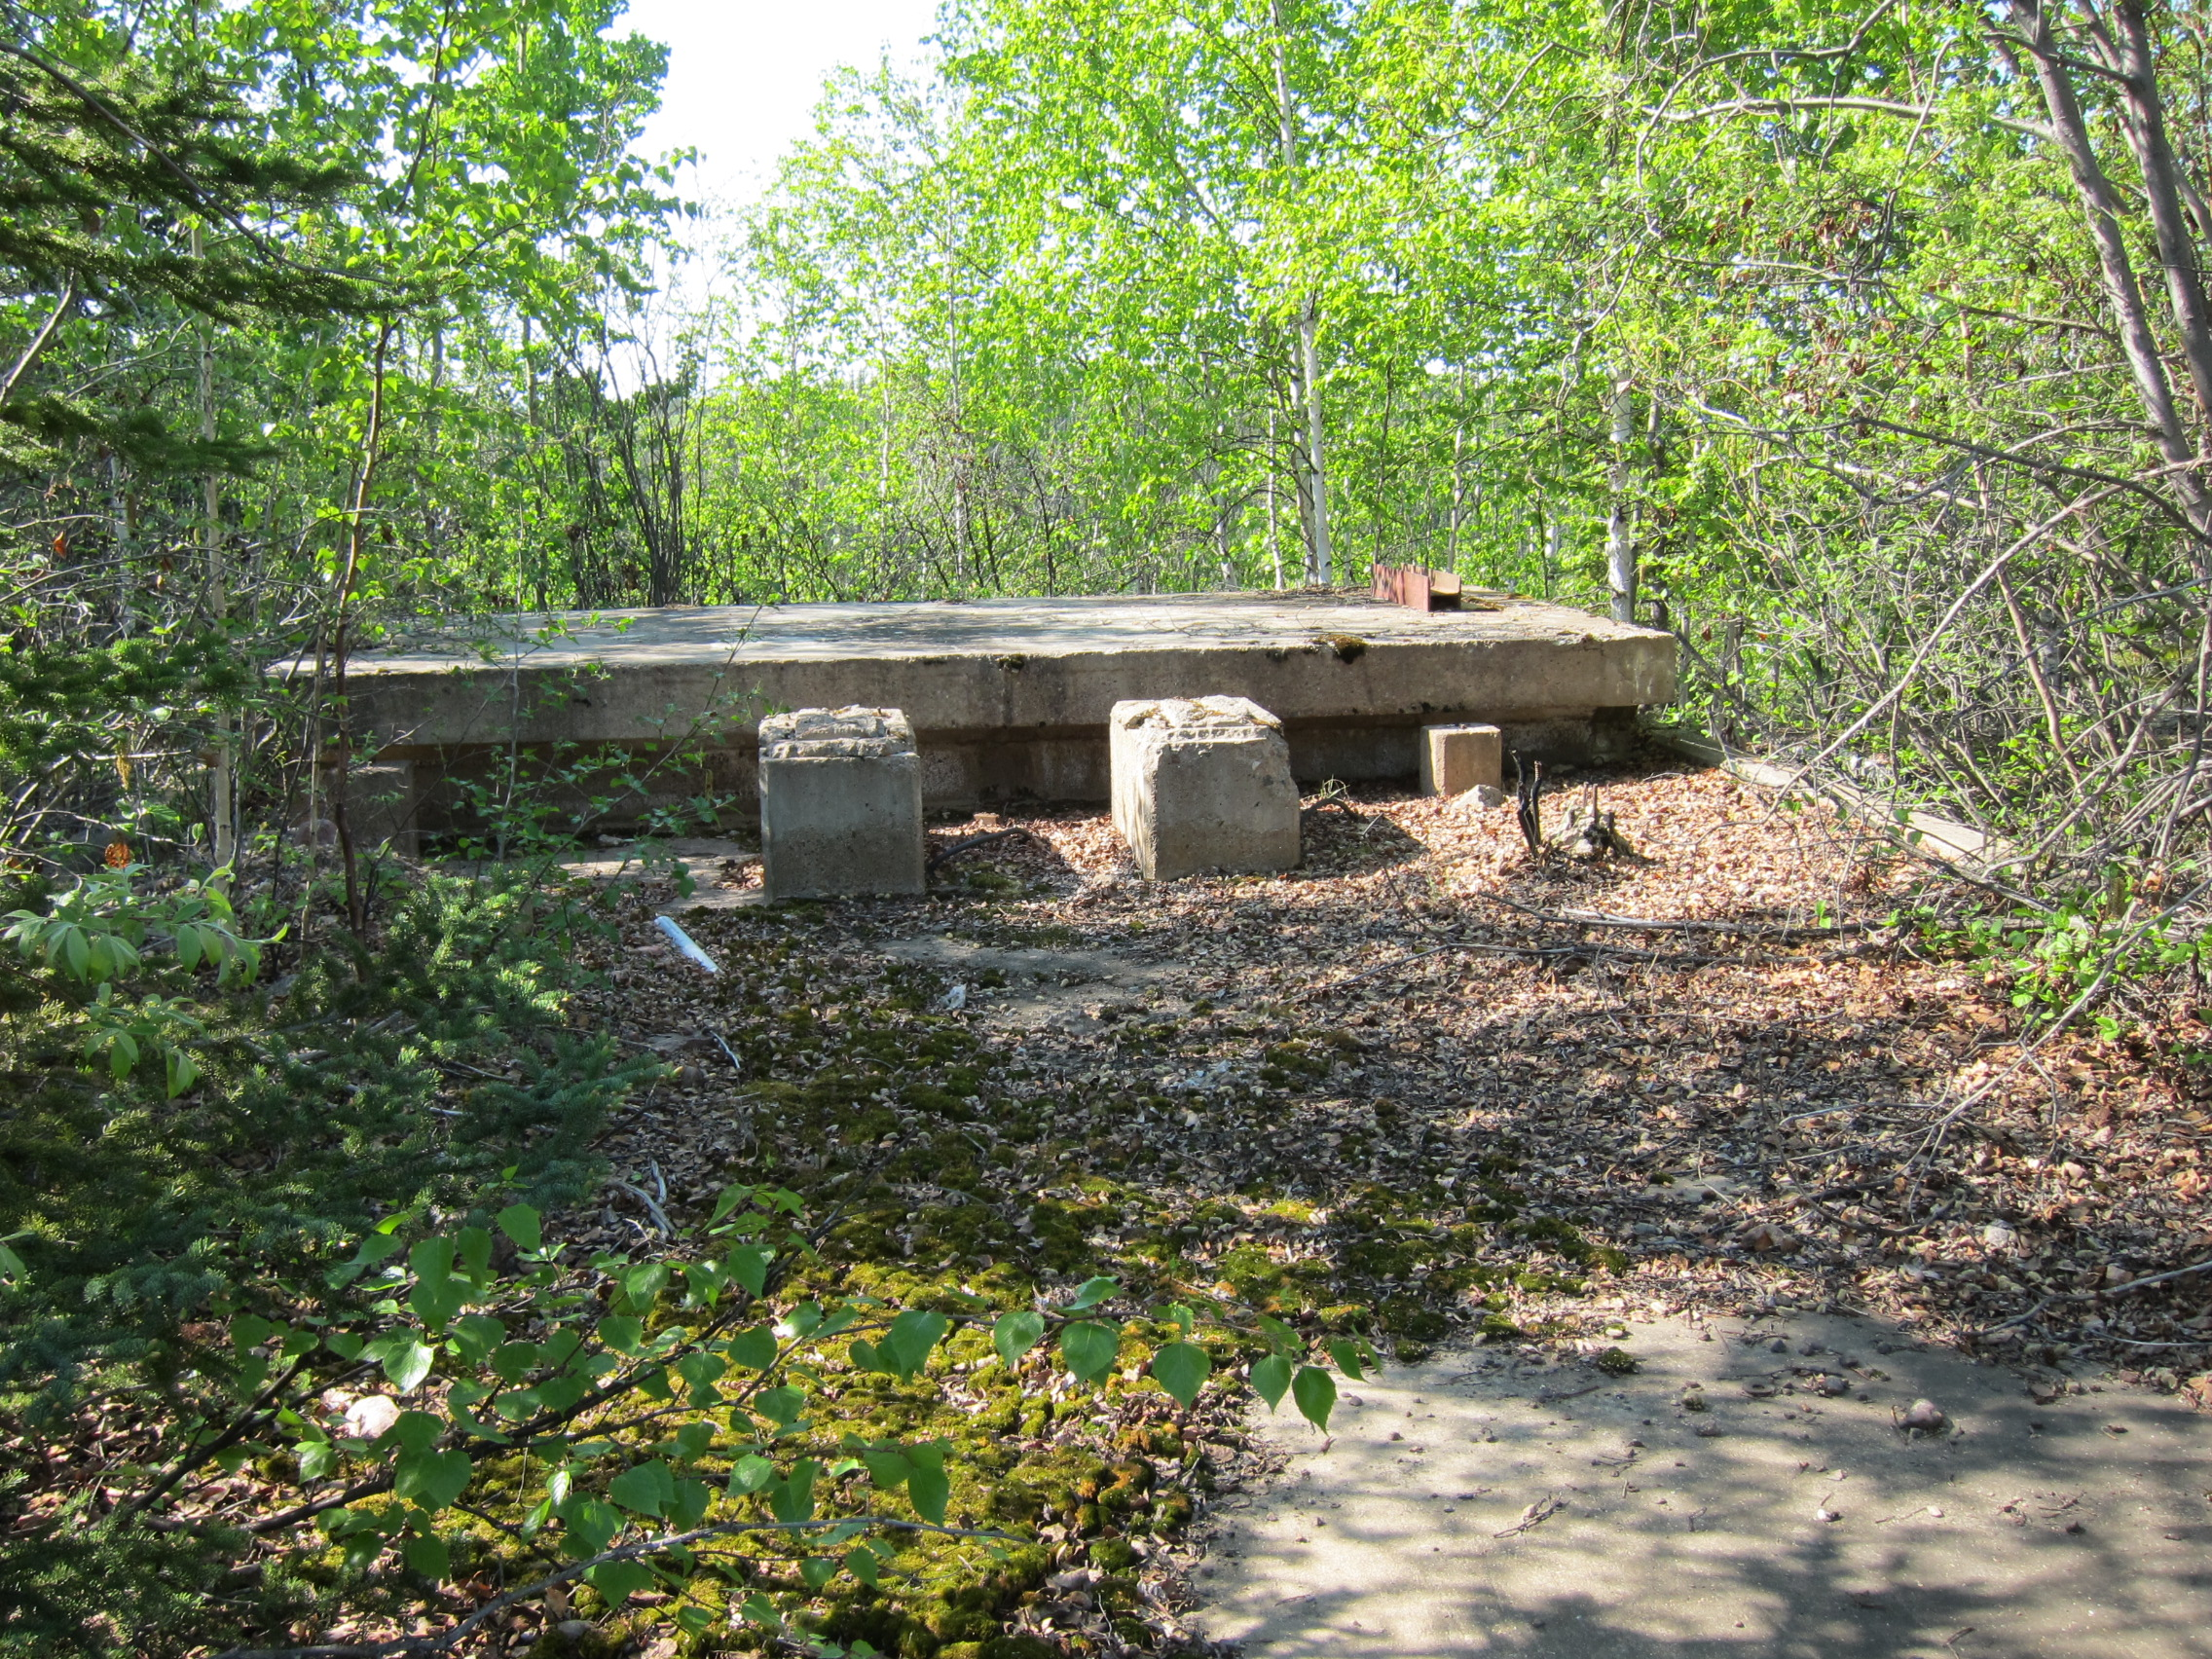 Remnants of a concrete structure in the forest